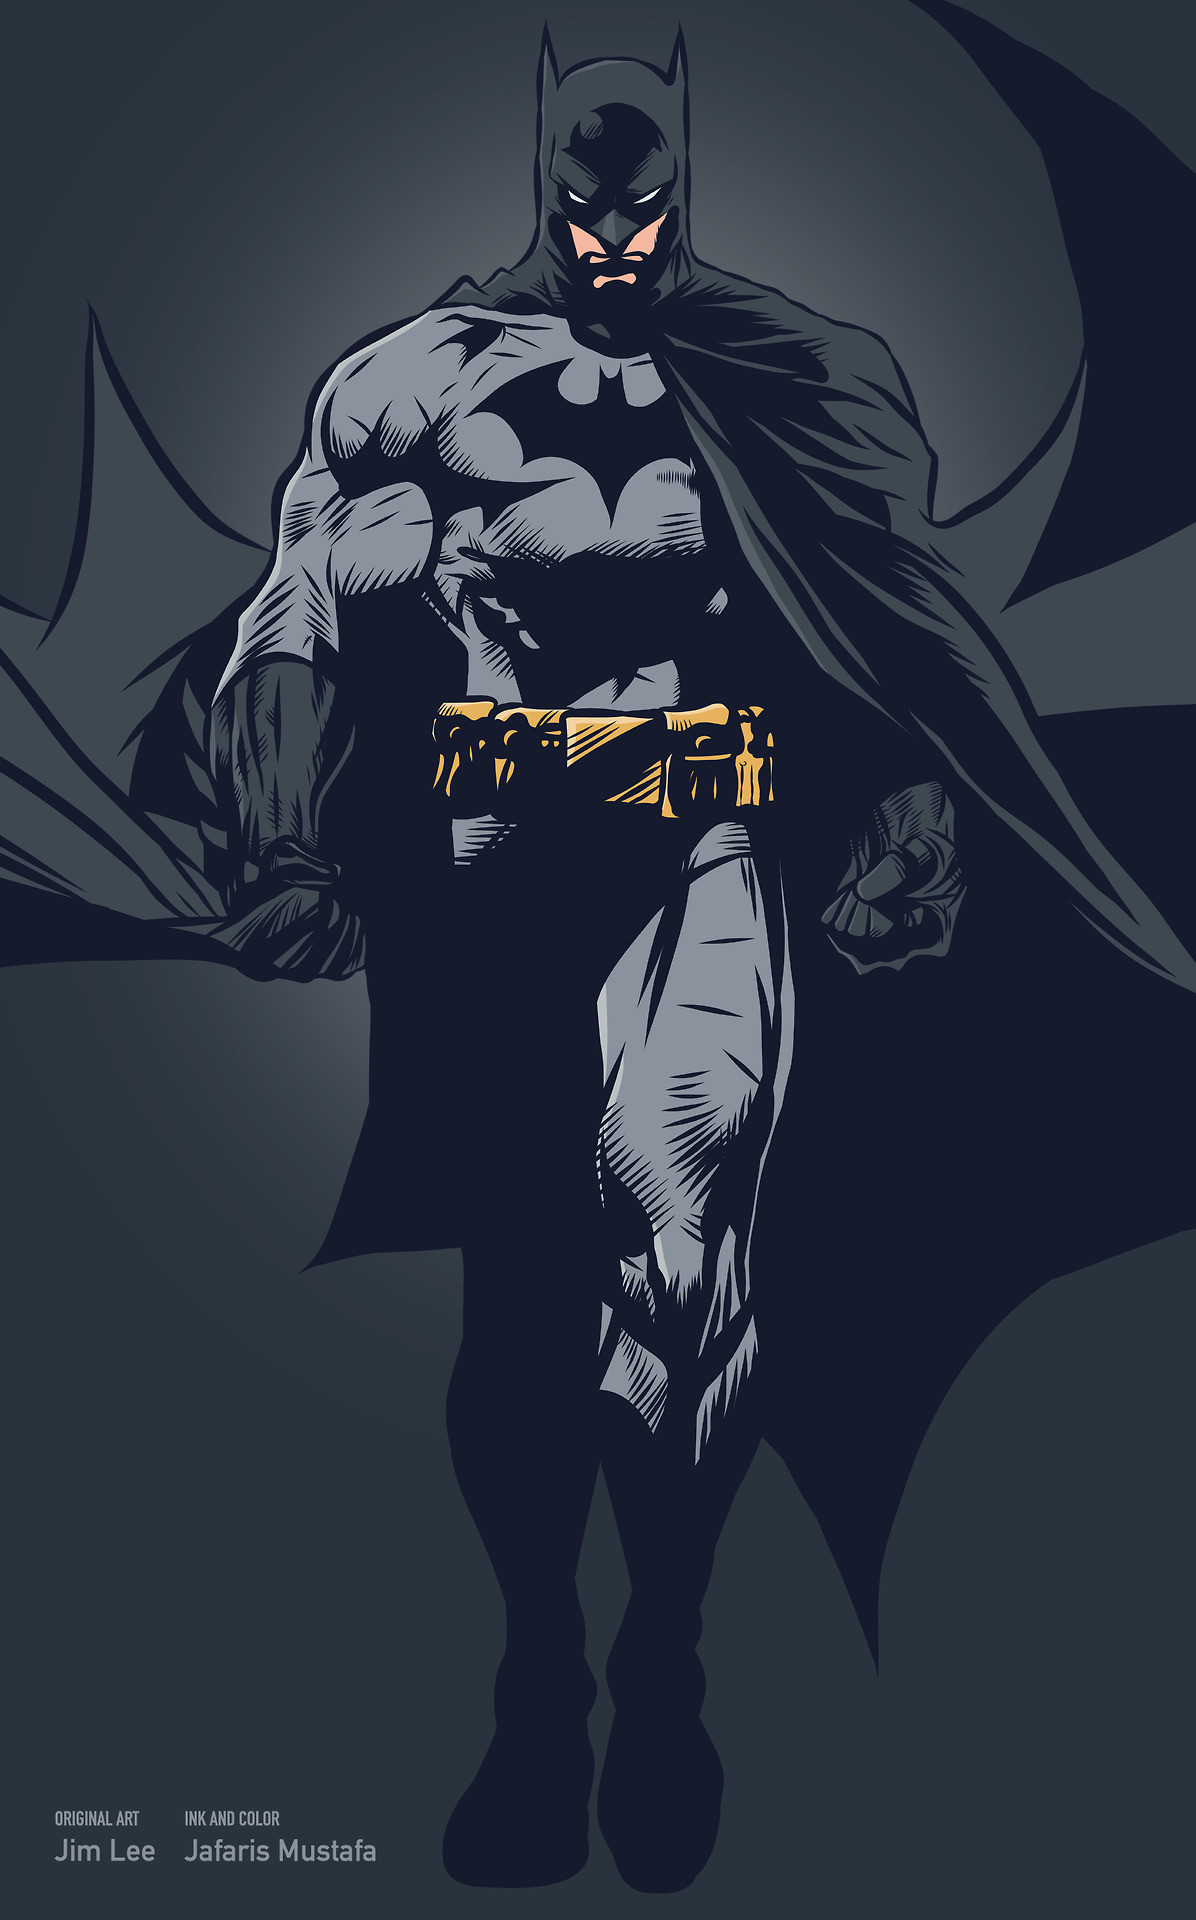 Res: 1196x1920, Batman by Jim Lee, inks and colours by Jarafris Mustafa